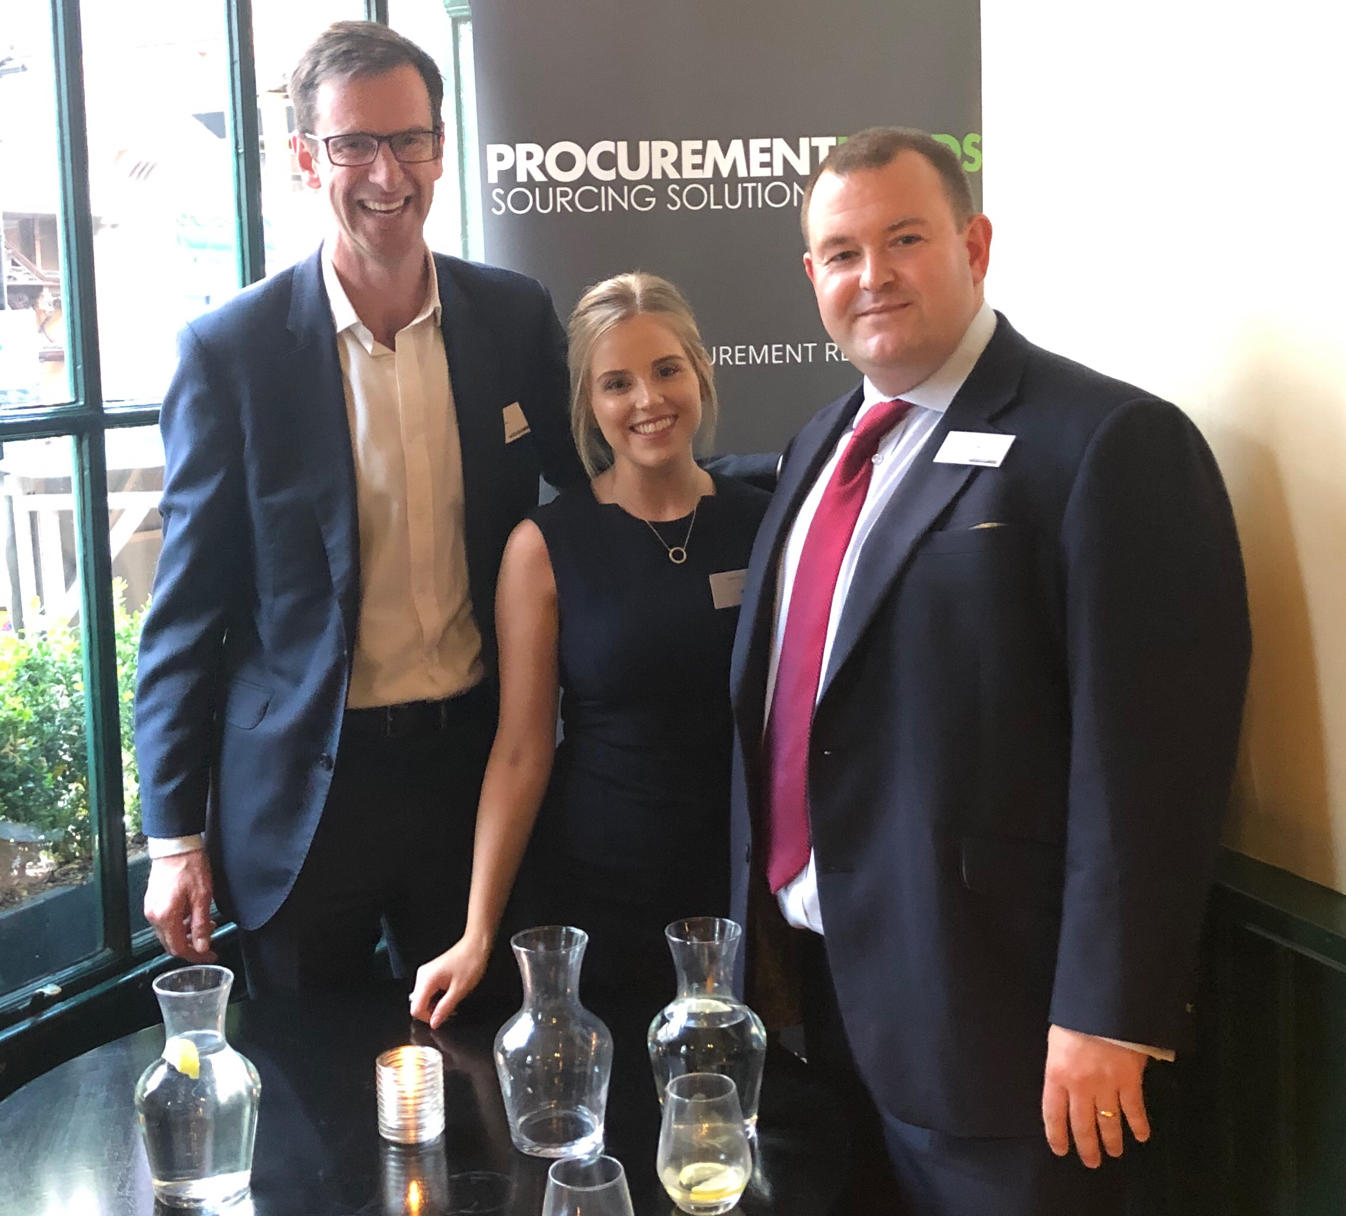 Procurement events: leadership networking